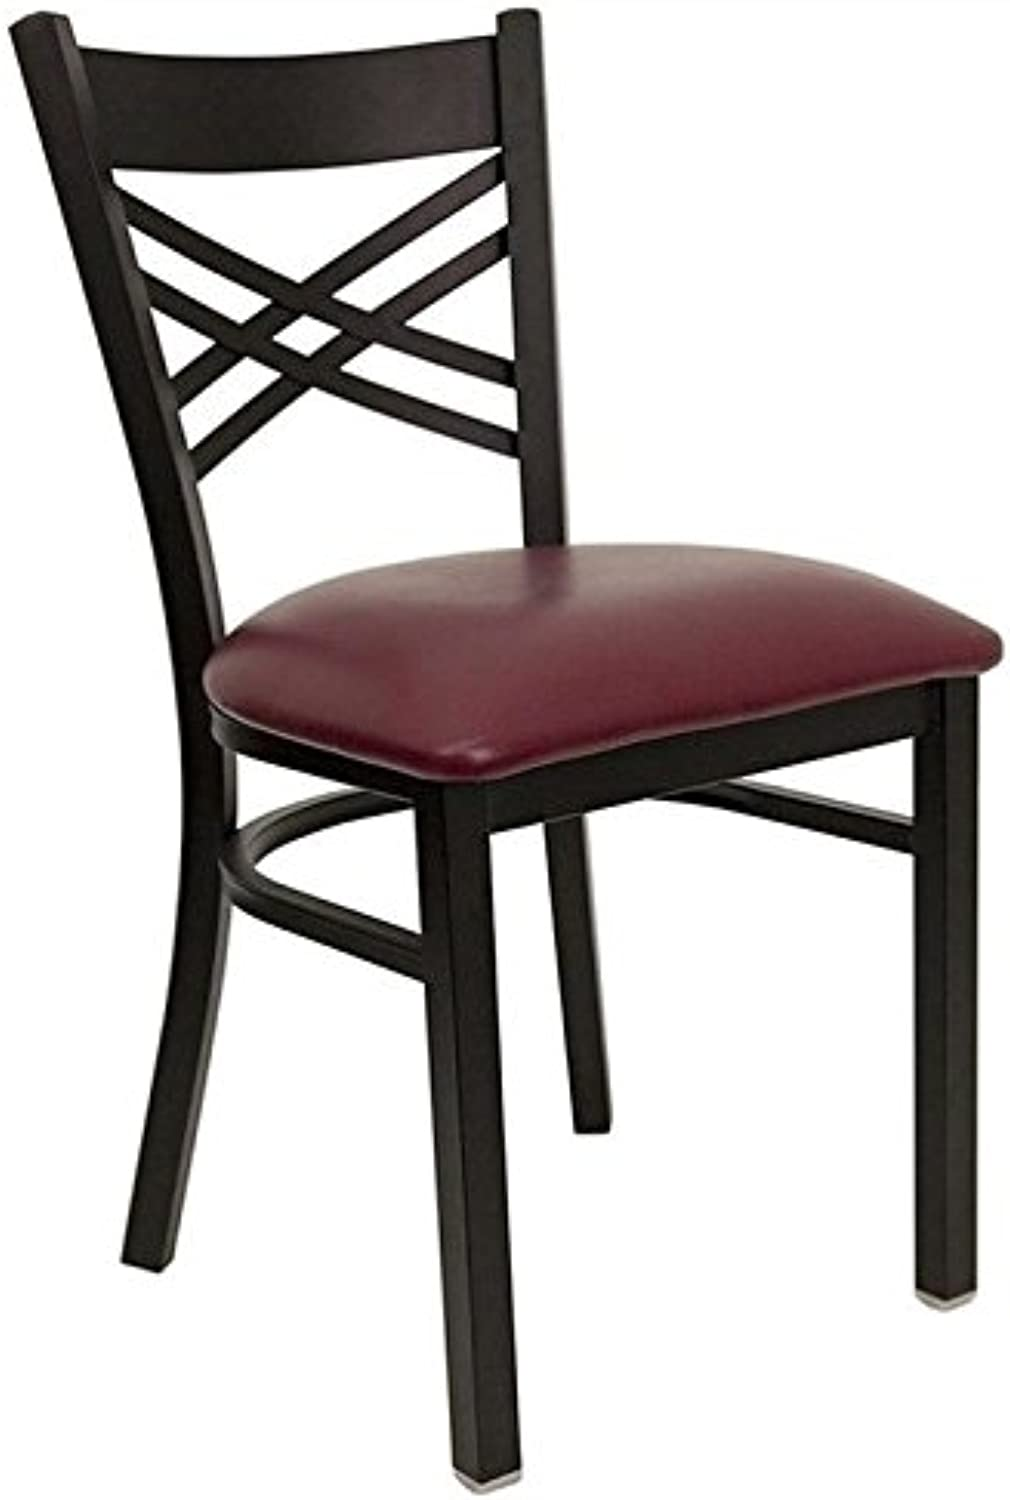 Bowery Hill Black Back Metal Dining Chair in Burgundy